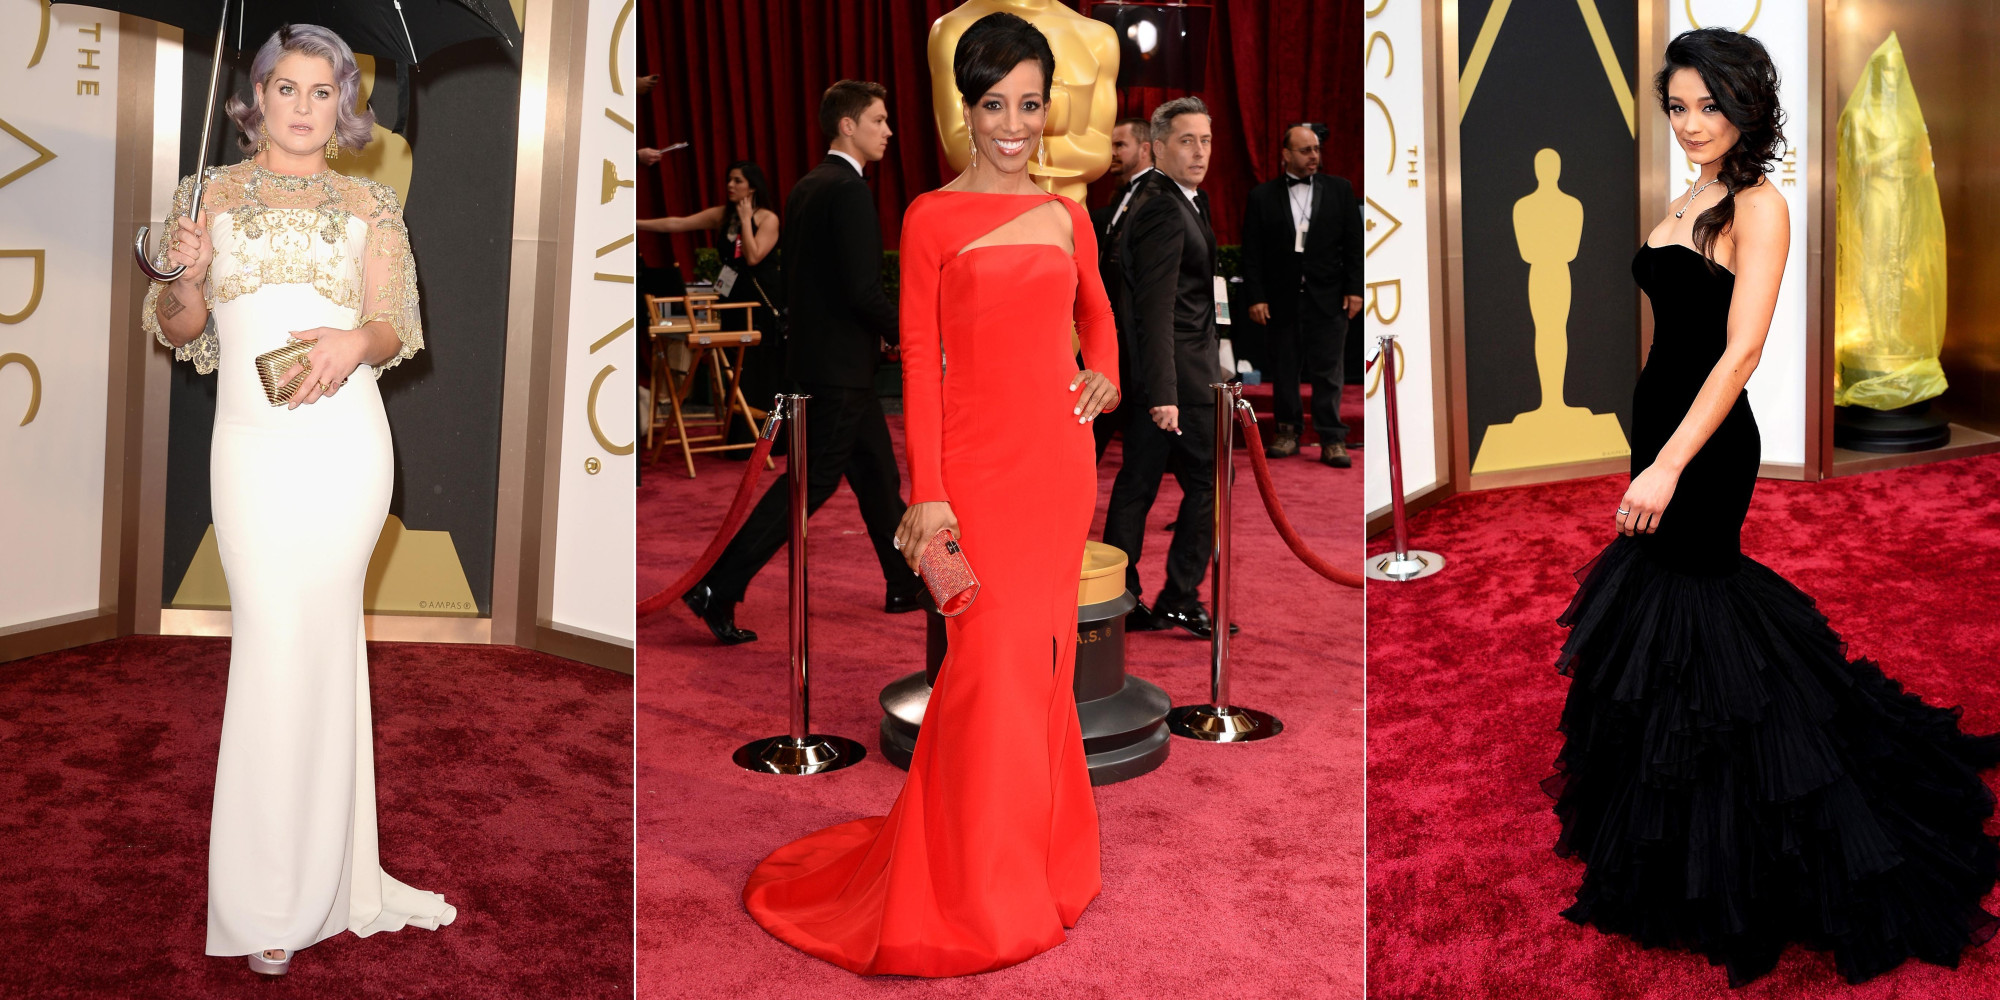 Oscars 2014 red carpet see all the stunning gowns from the academy awards photos huffpost - Red carpet oscar dresses ...